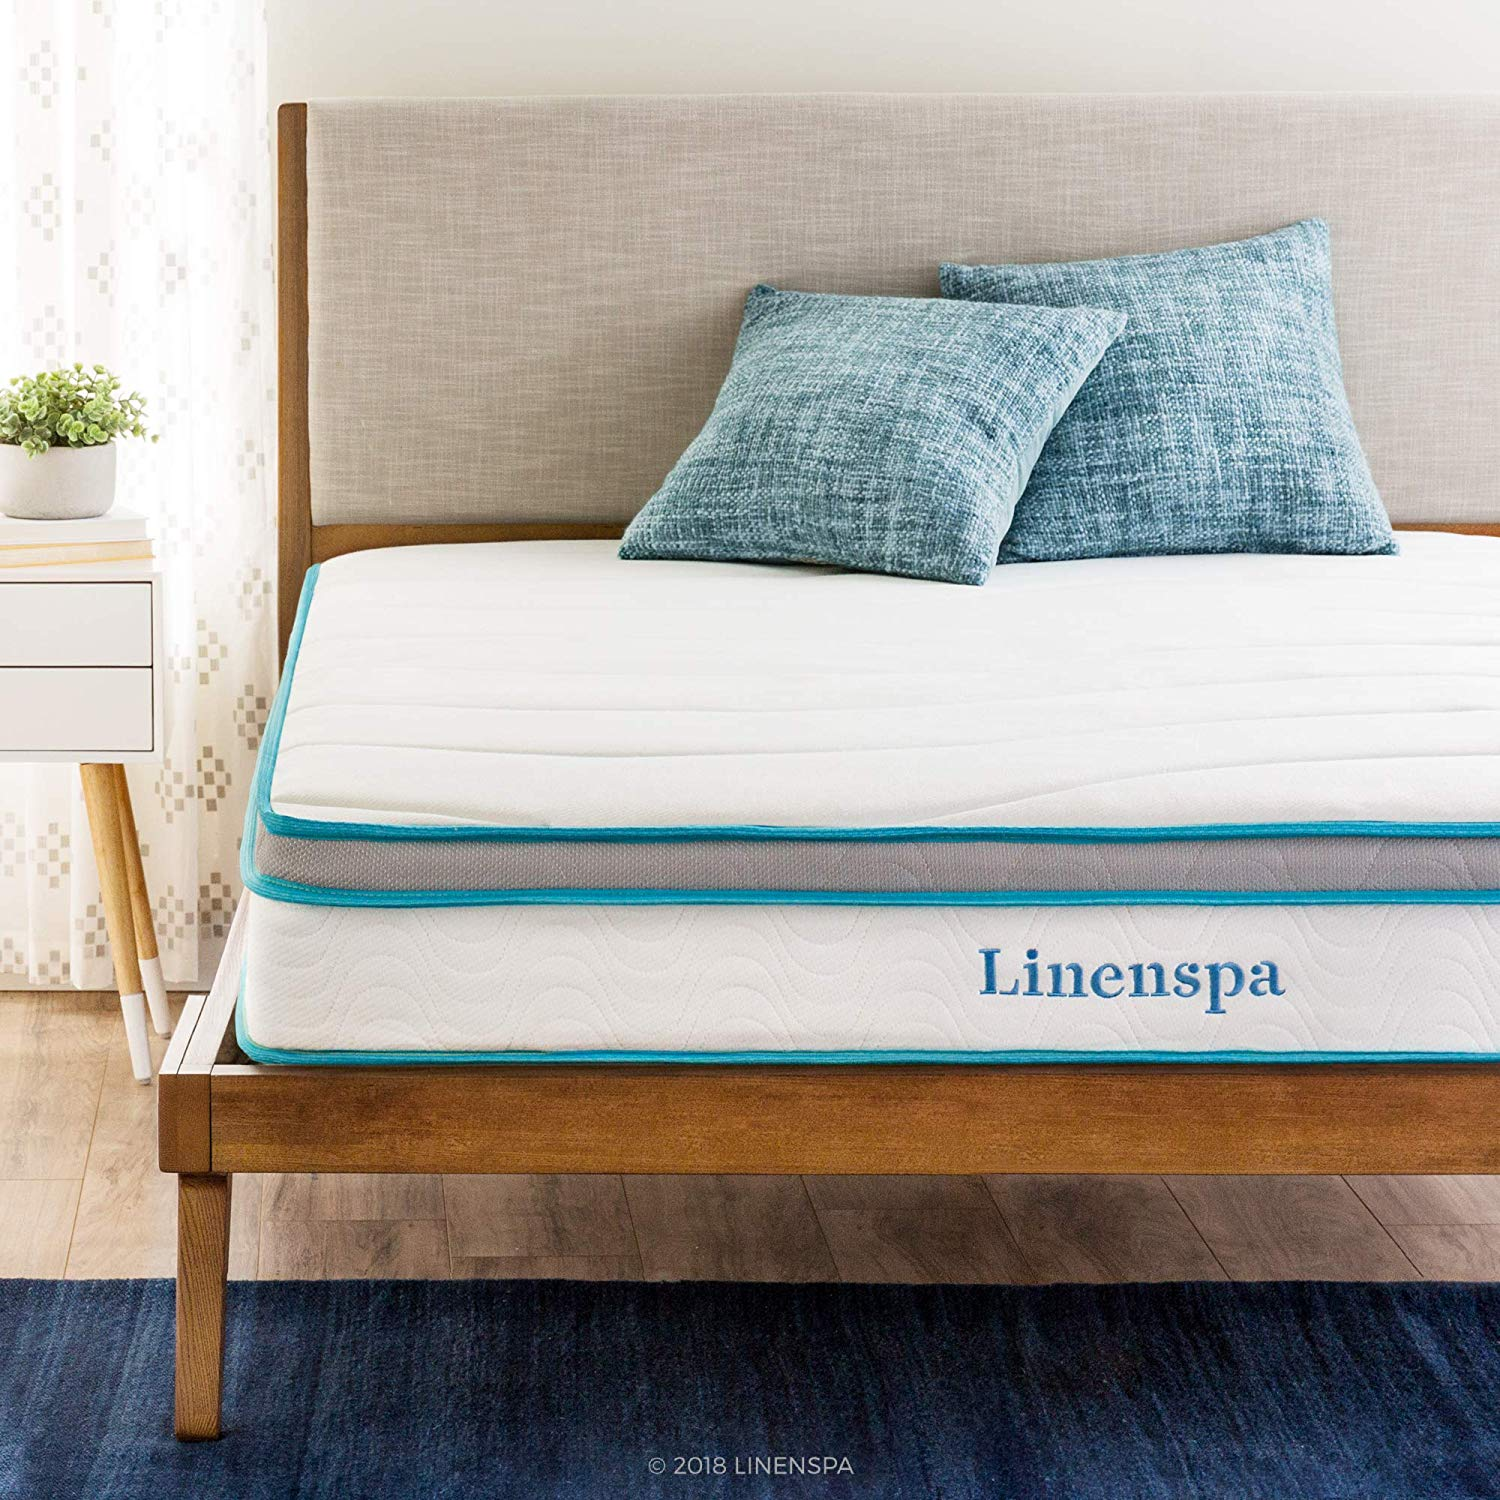 Best innerspring king size mattress under 500 topratedhomeproducts